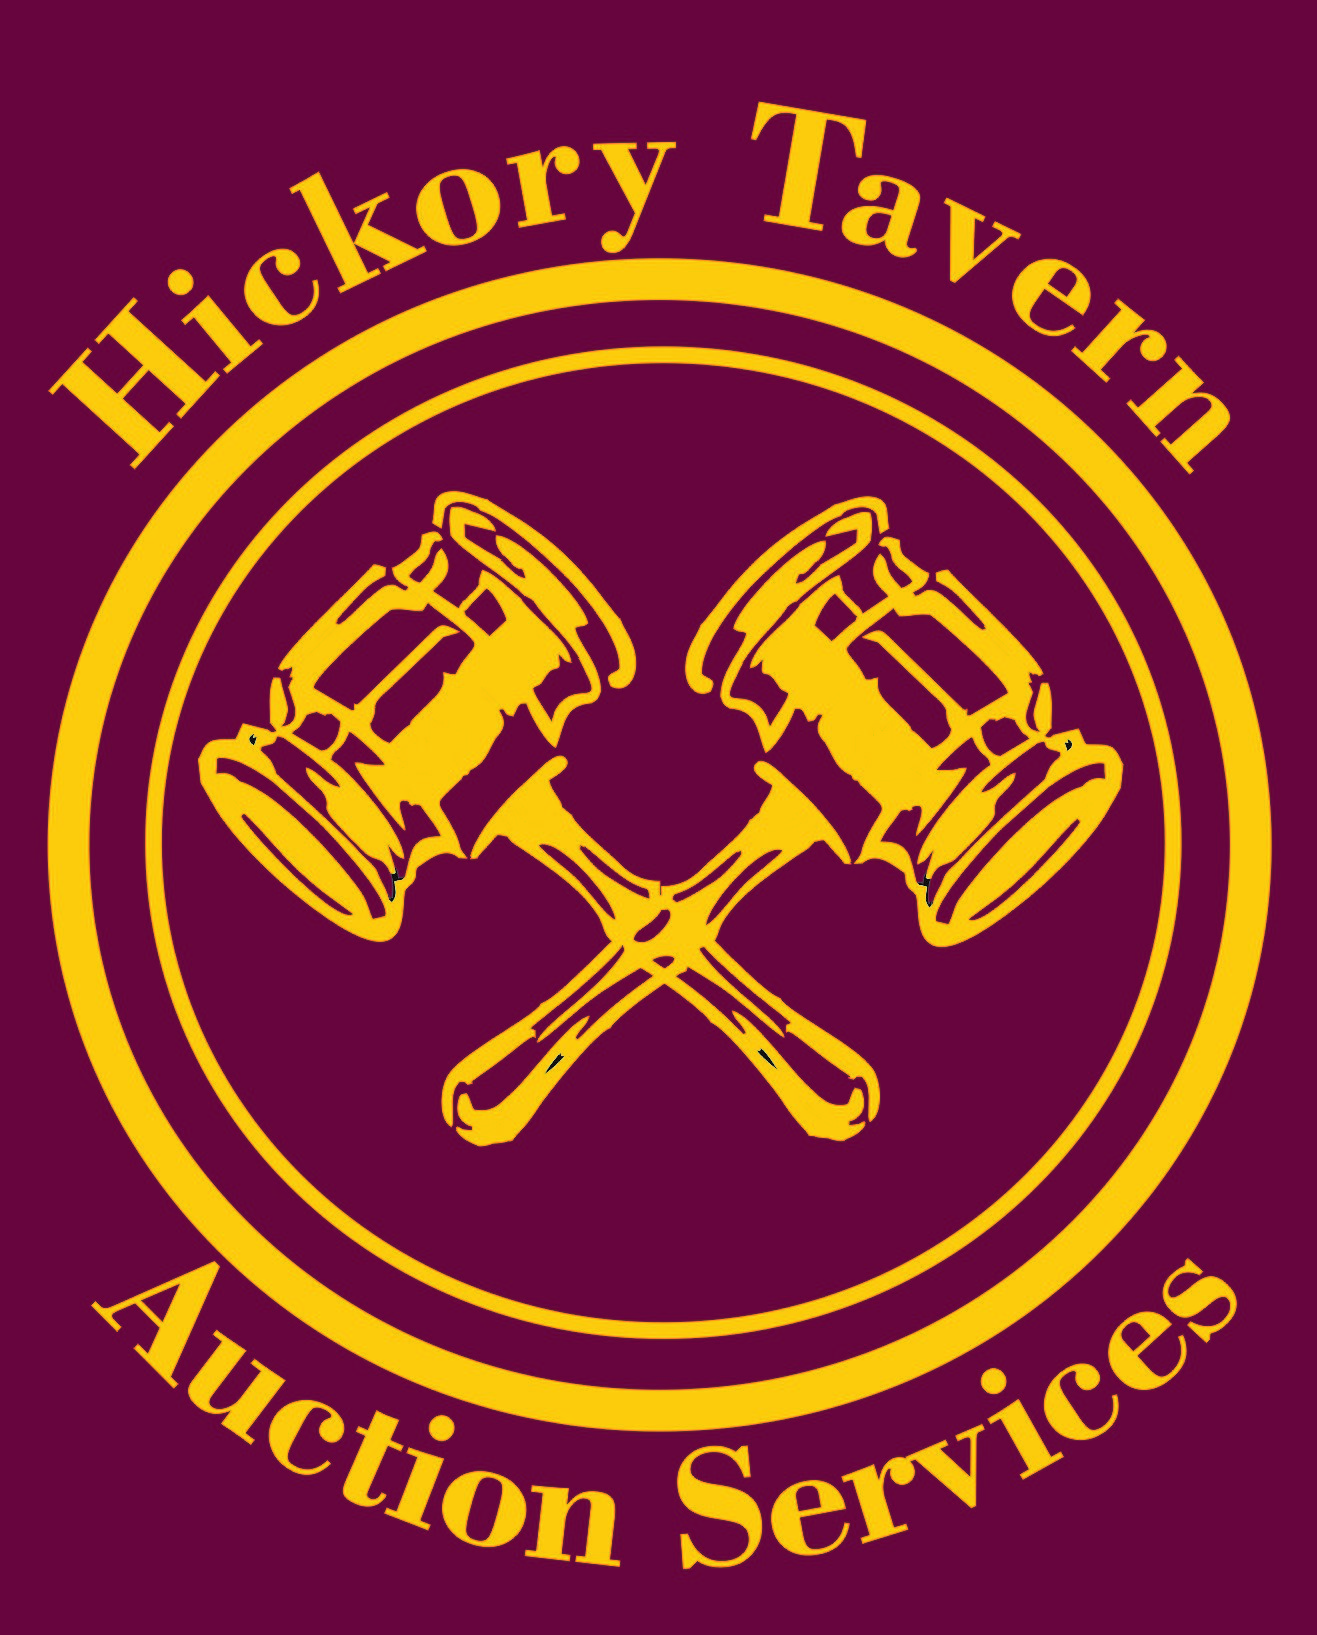 Hickory Tavern Auction Services, LLC